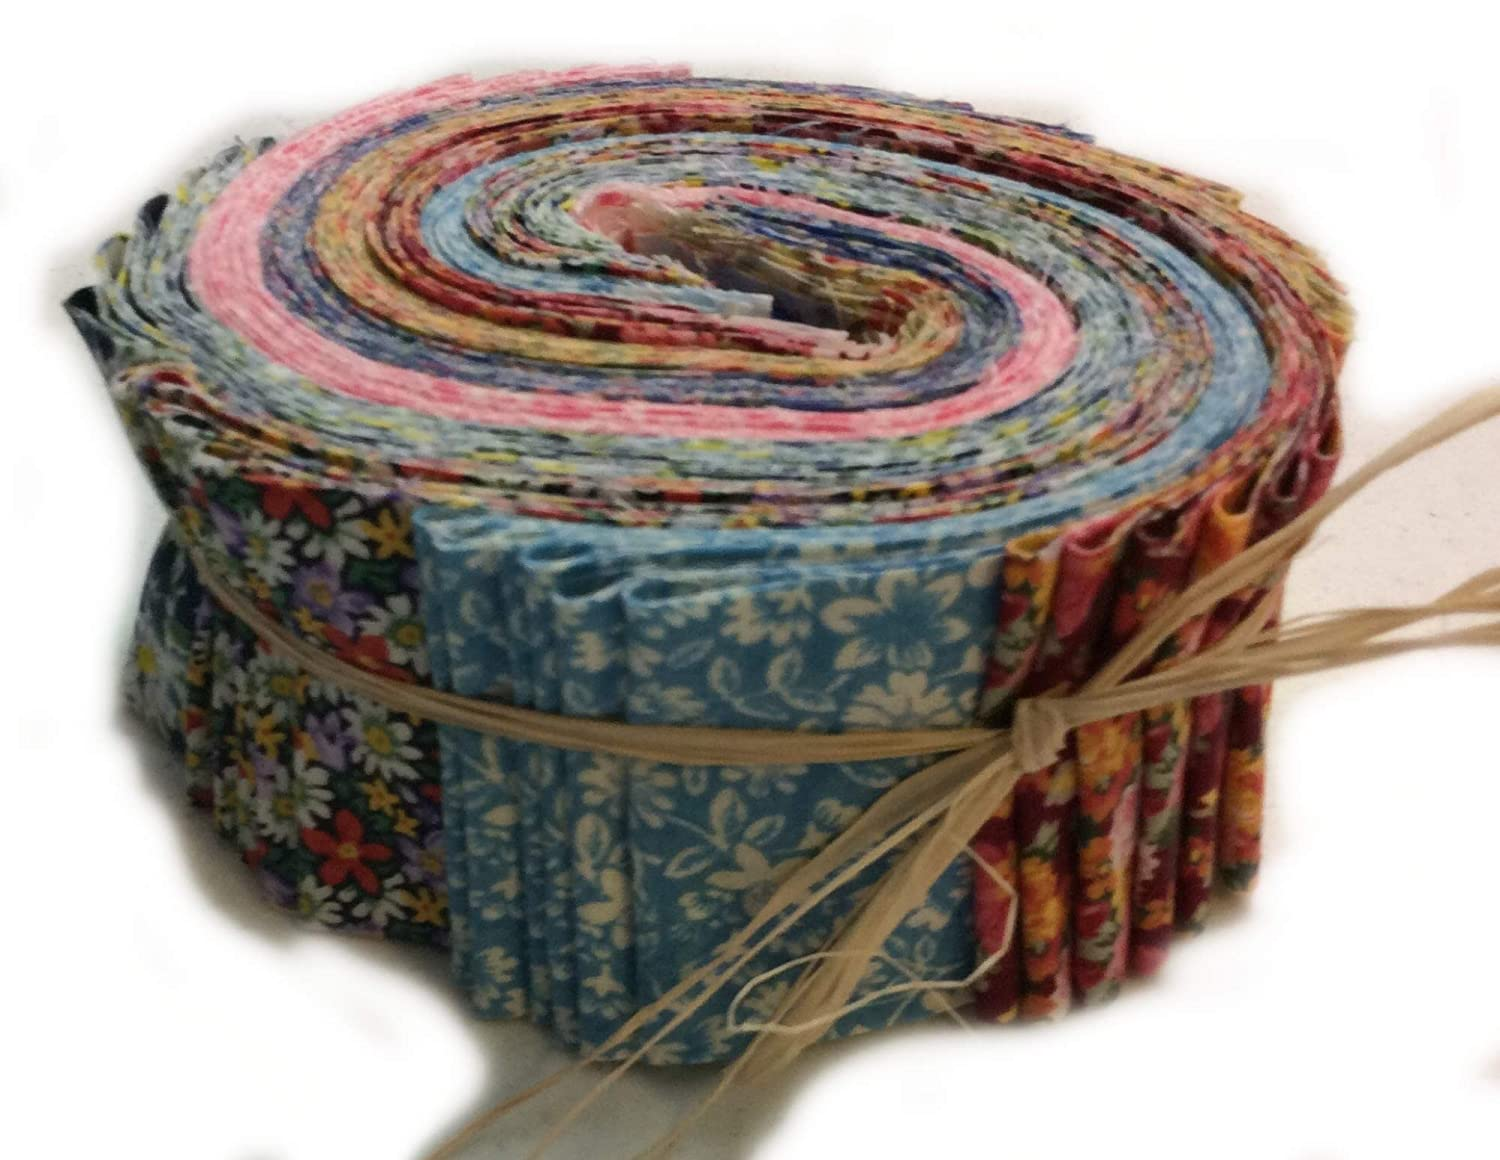 """Grandma'S Calico Jelly ROLL for Quilting, 42 2.5"""" Strips, and Bonus Retractable Tape Measure Created and Designed Exclusively for Ozark Mountain Quilter 42 2.5"""" Strips OzarkMountainQuilter 4336913373"""